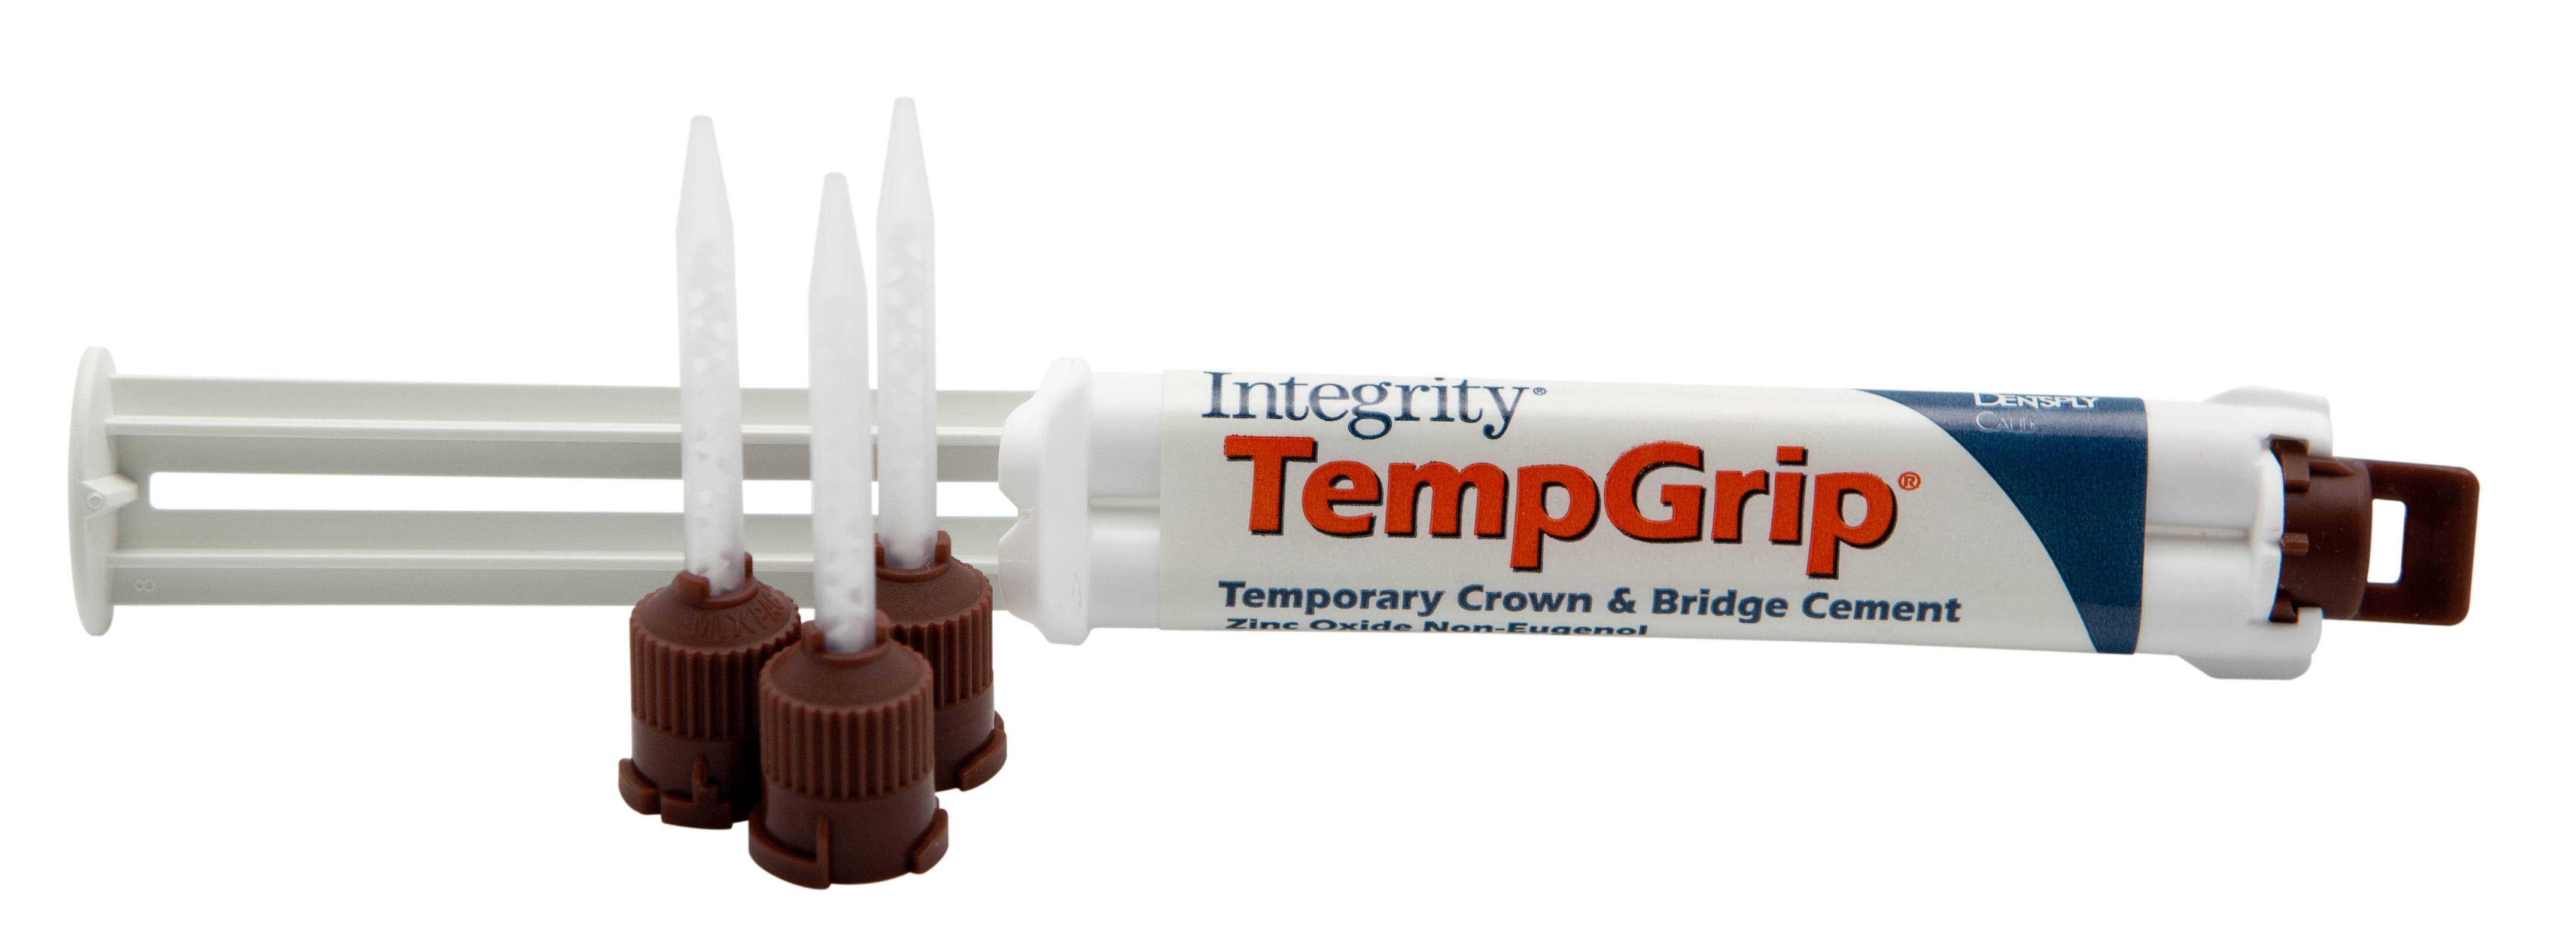 INTEGRITY TEMP GRIP